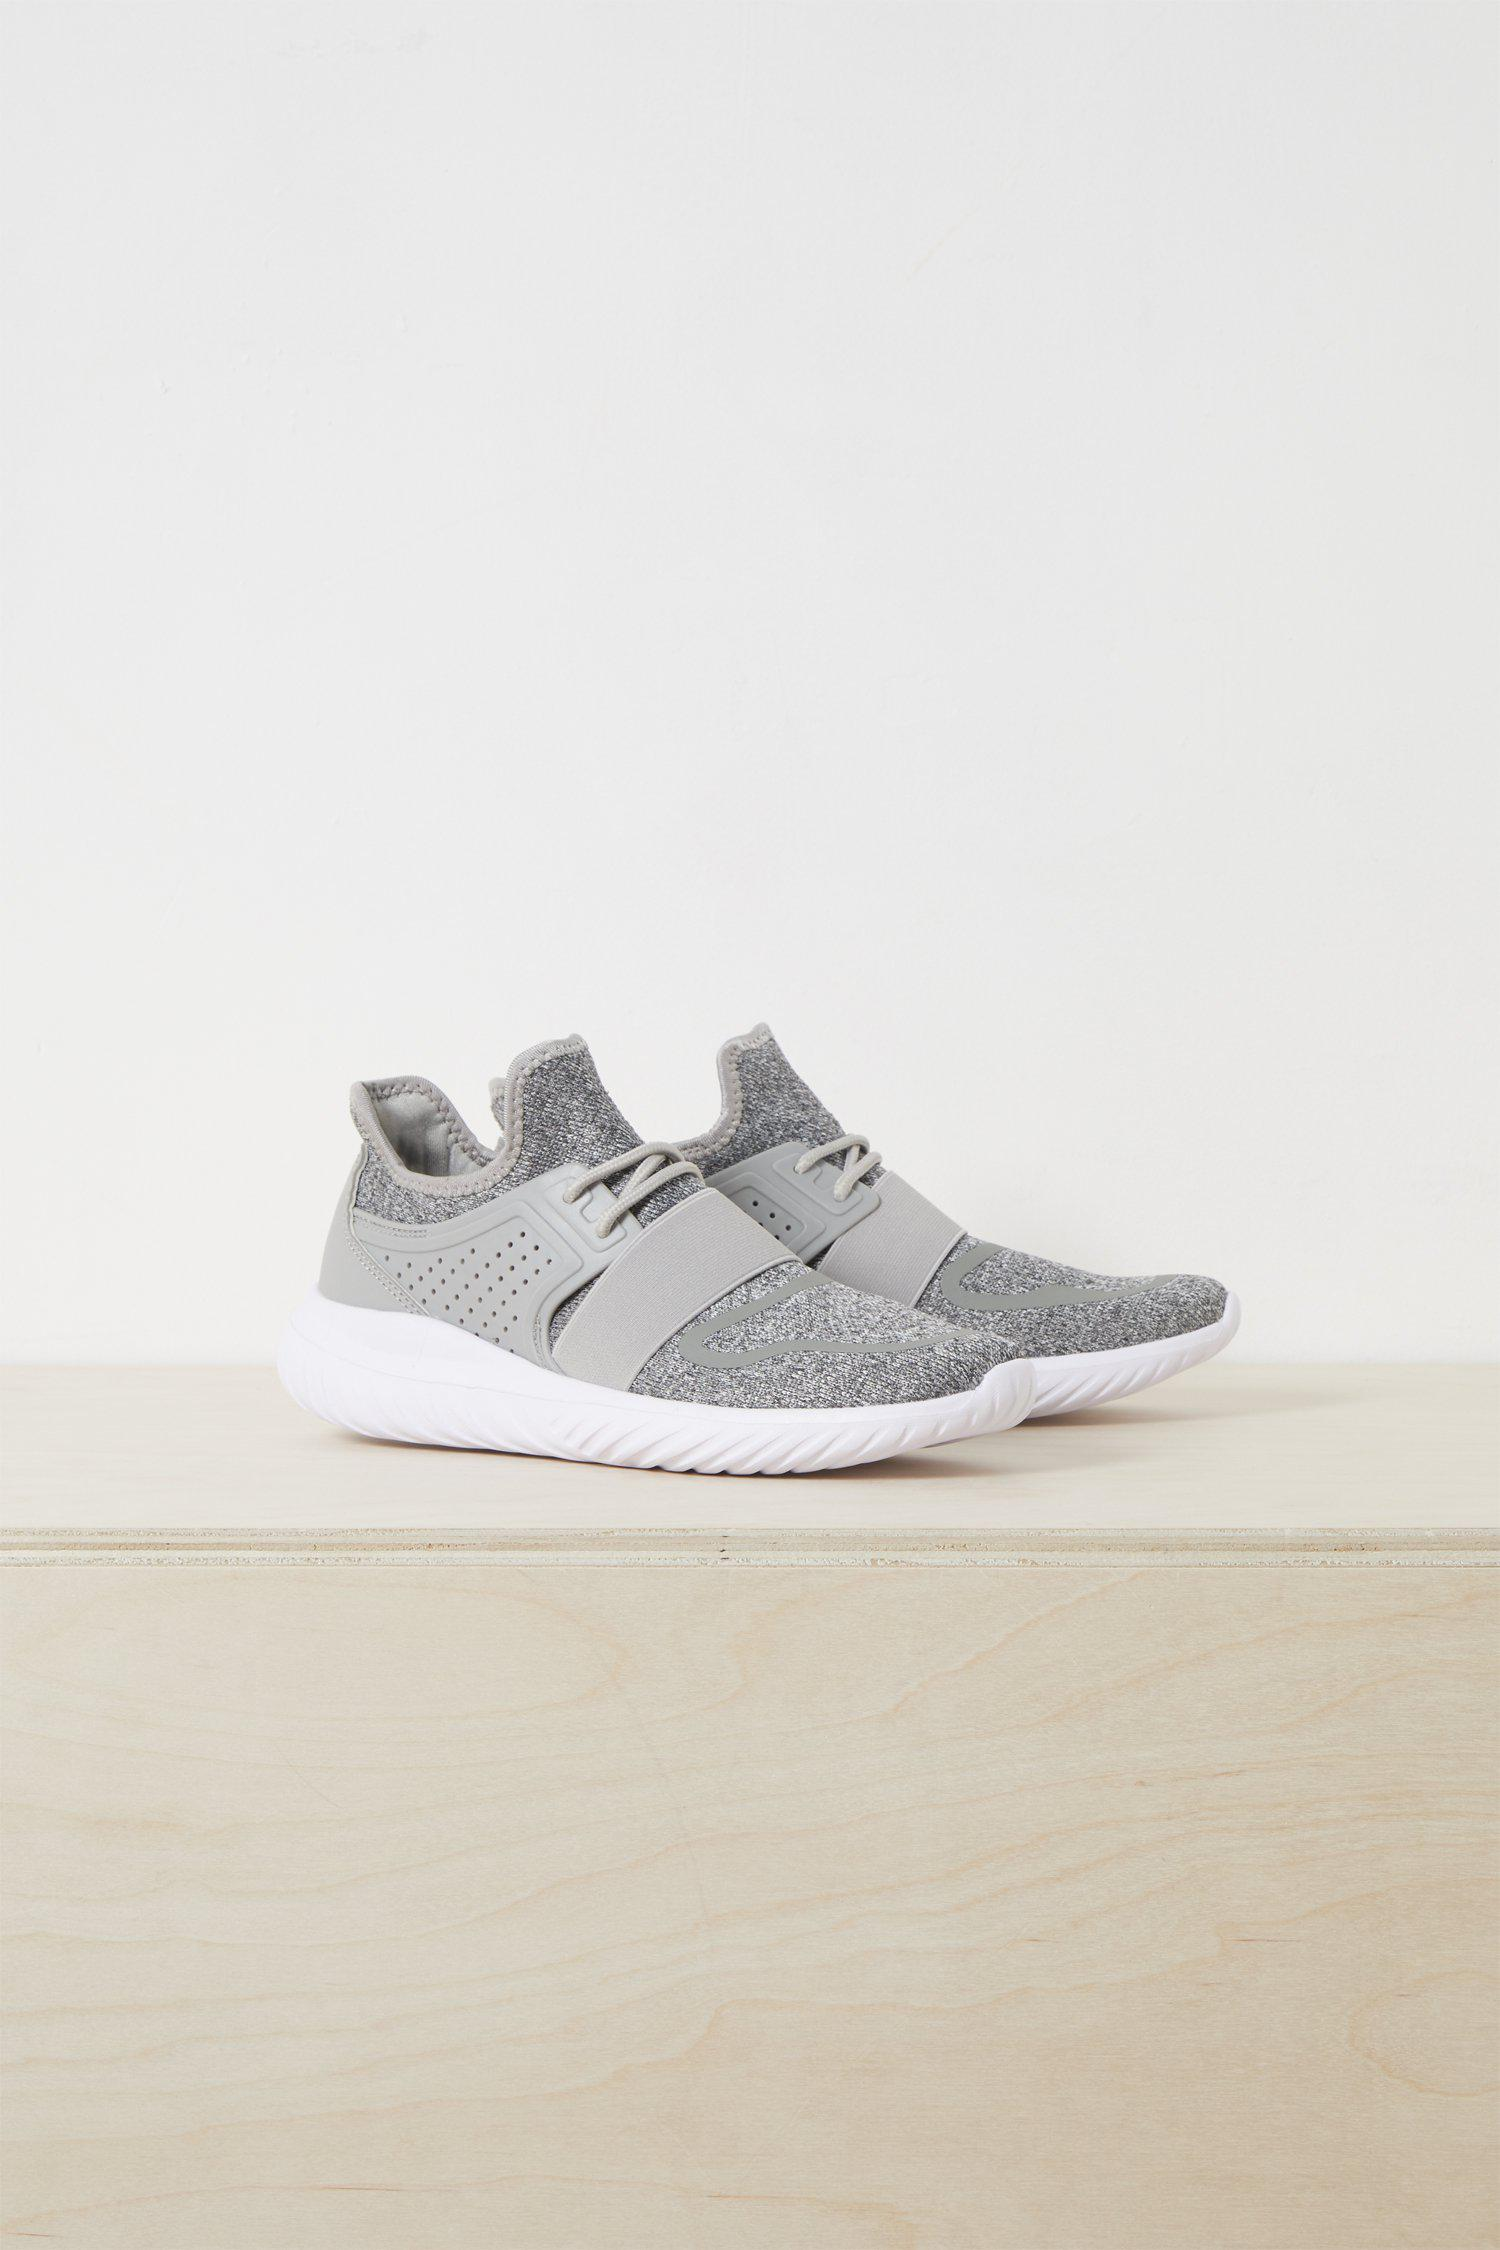 French Connection Denim Nella Knitted Lace Up Trainer in Grey